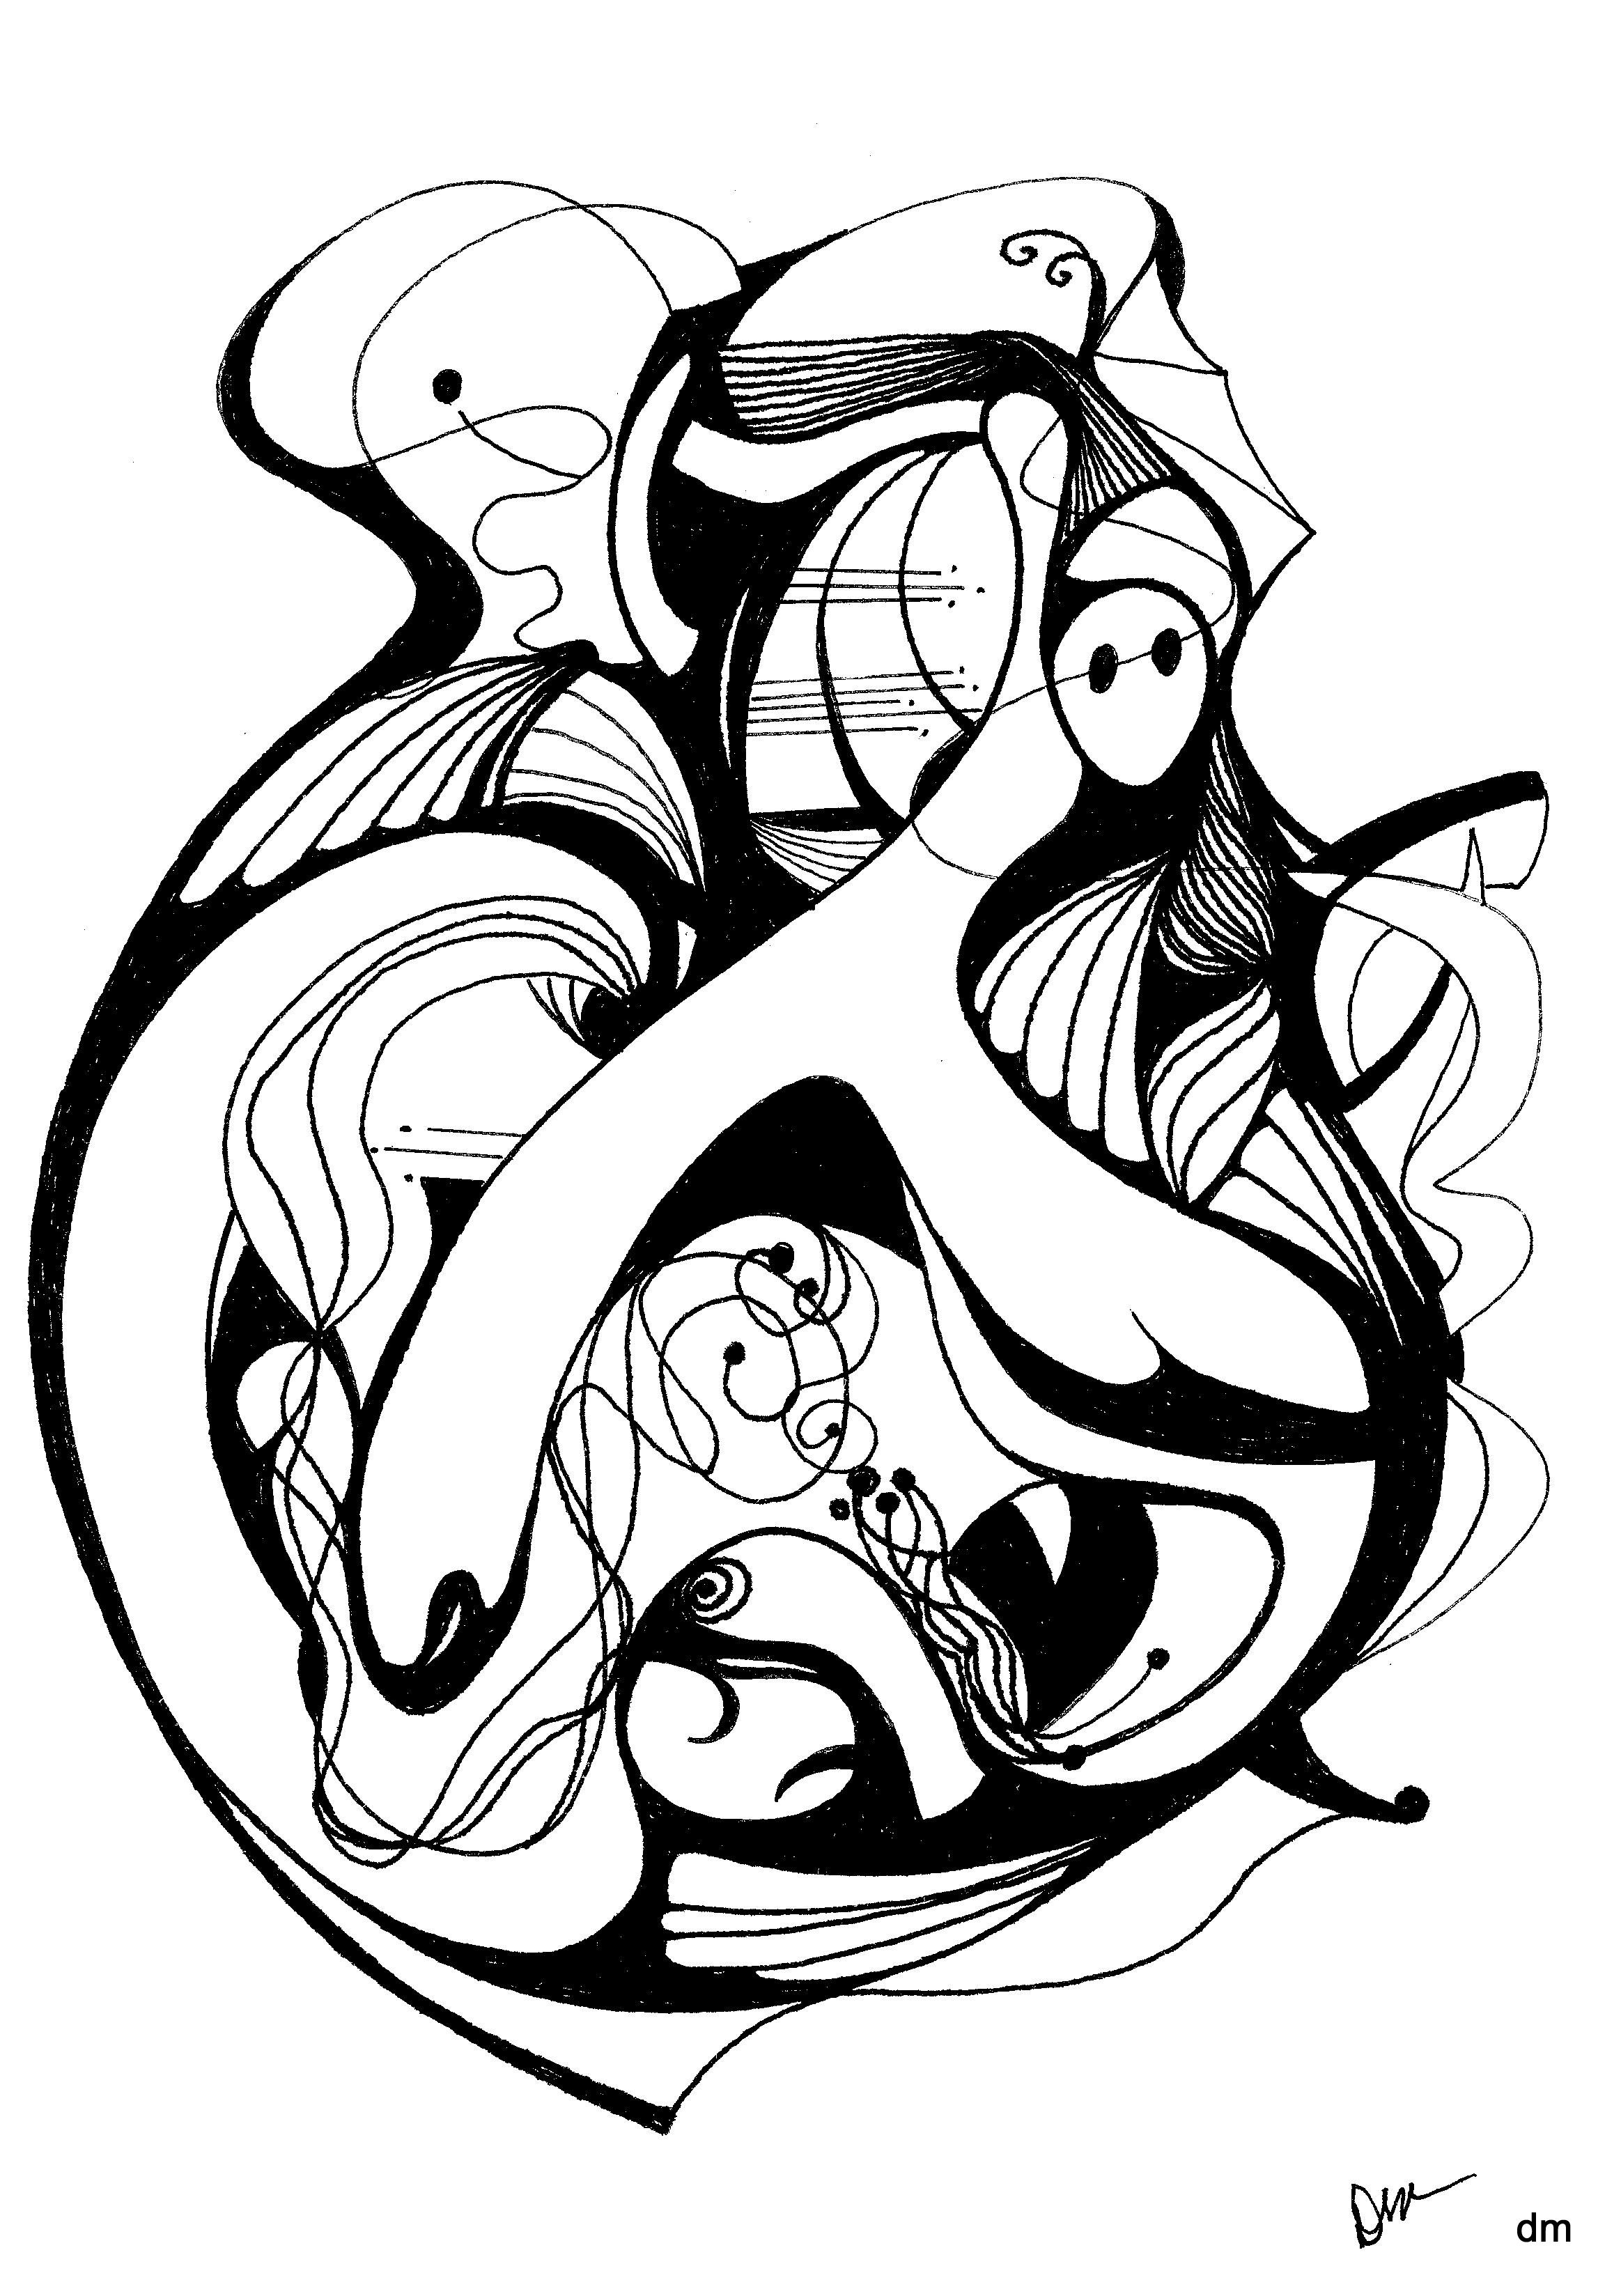 Abstract pencil drawings free download best abstract pencil